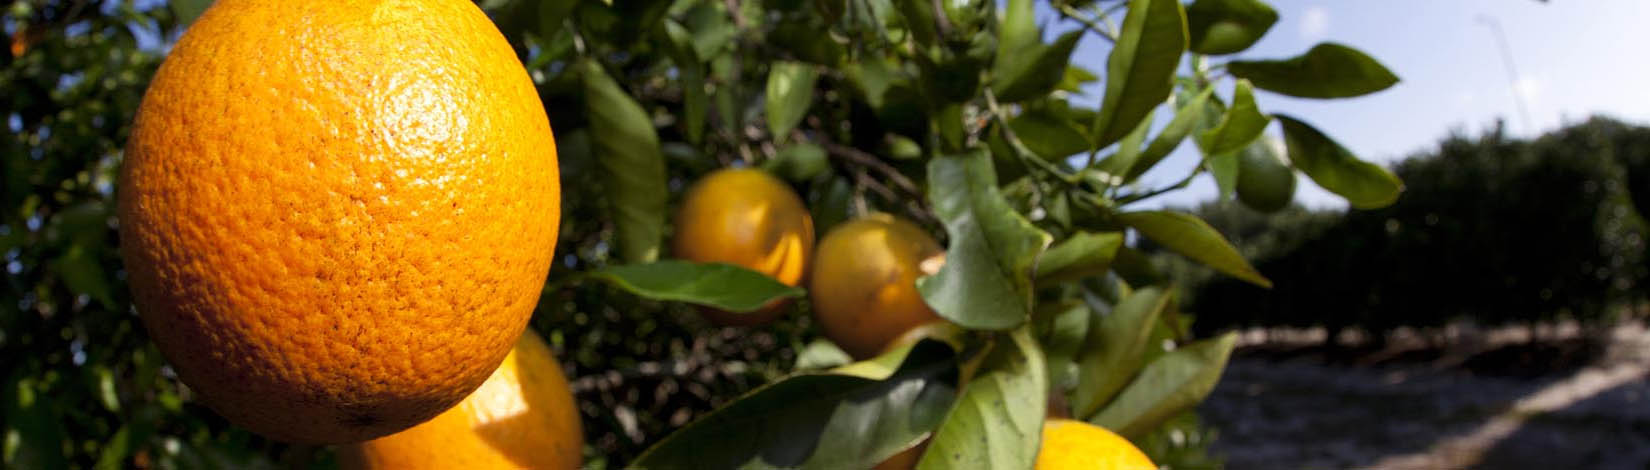 Oranges_on_tree